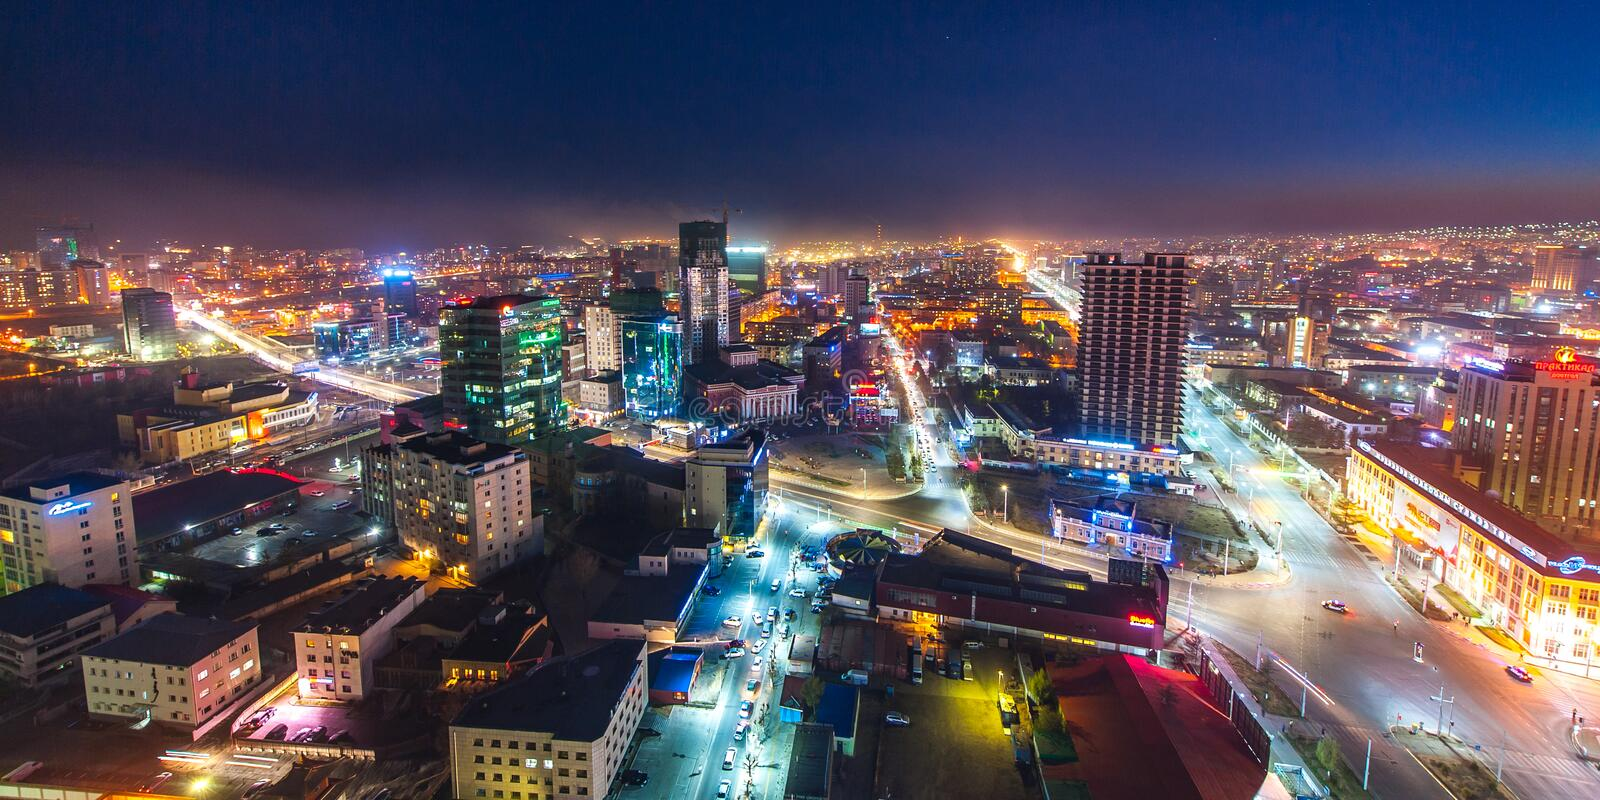 Ulaan-Baator, Mongolia - May 16, 2015: Night view at the streets of the capital of Mongolia. stock photo